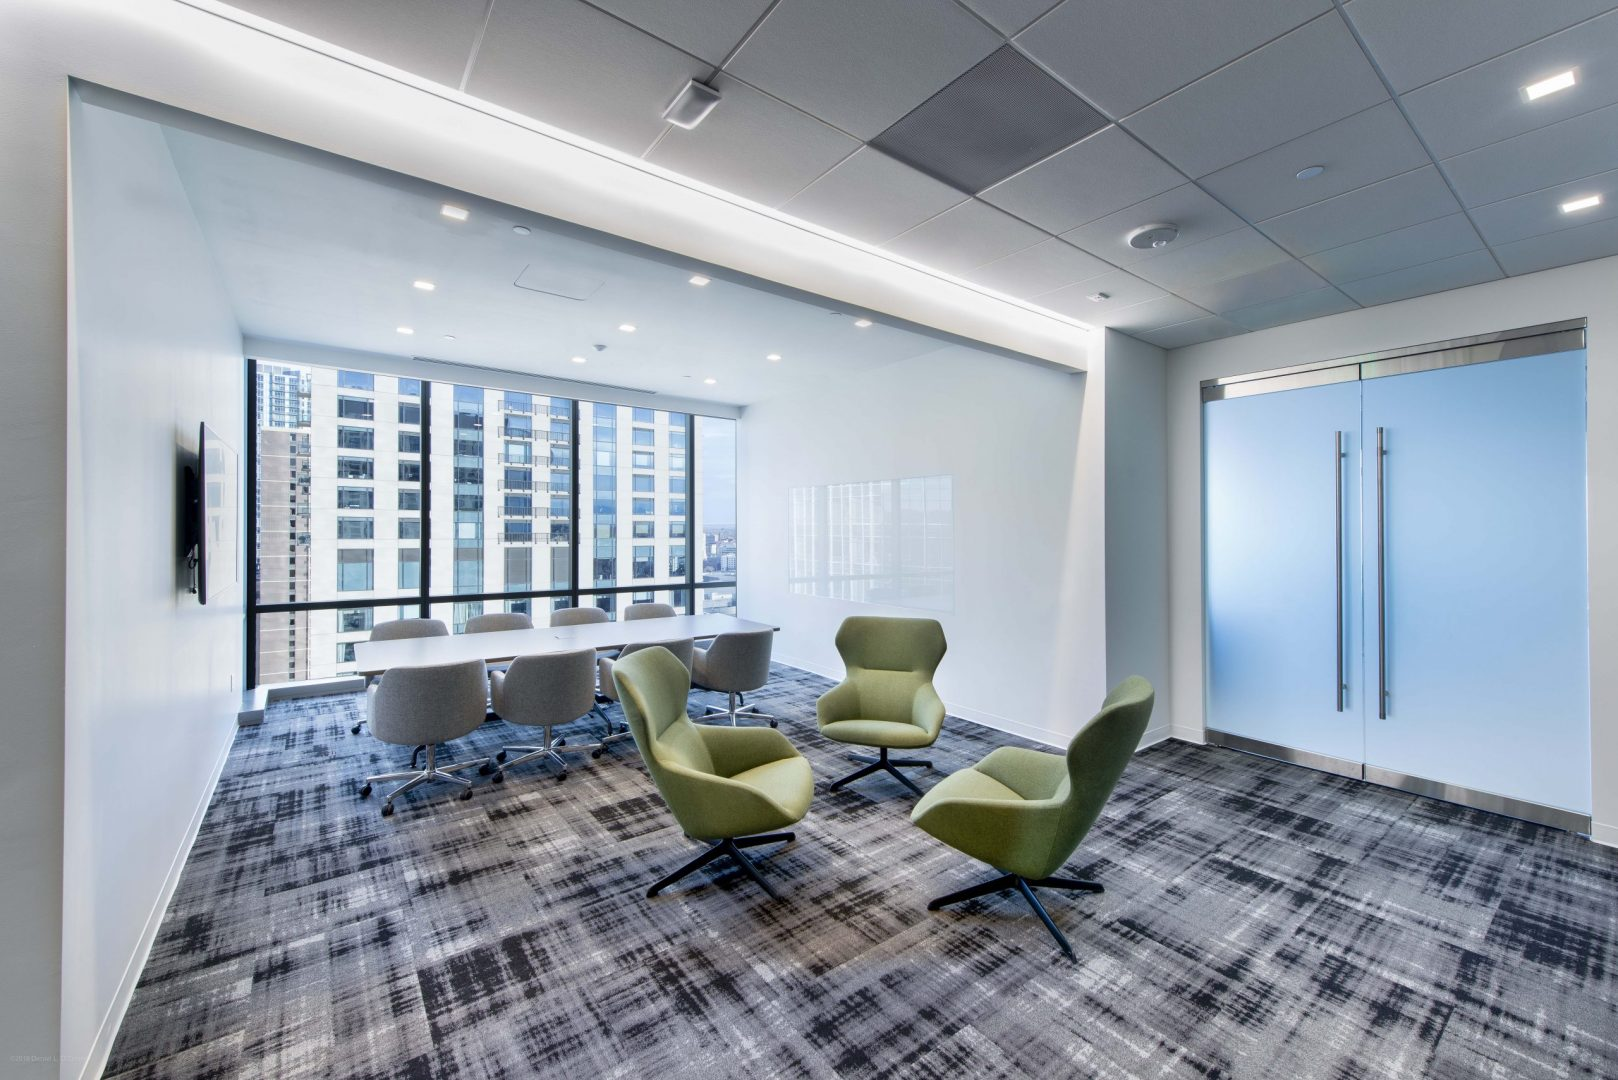 Investment Management Company Denver Corporate Interior Design Meeting Room Conference High End Ceiling Tiles Recessed Linear Lights